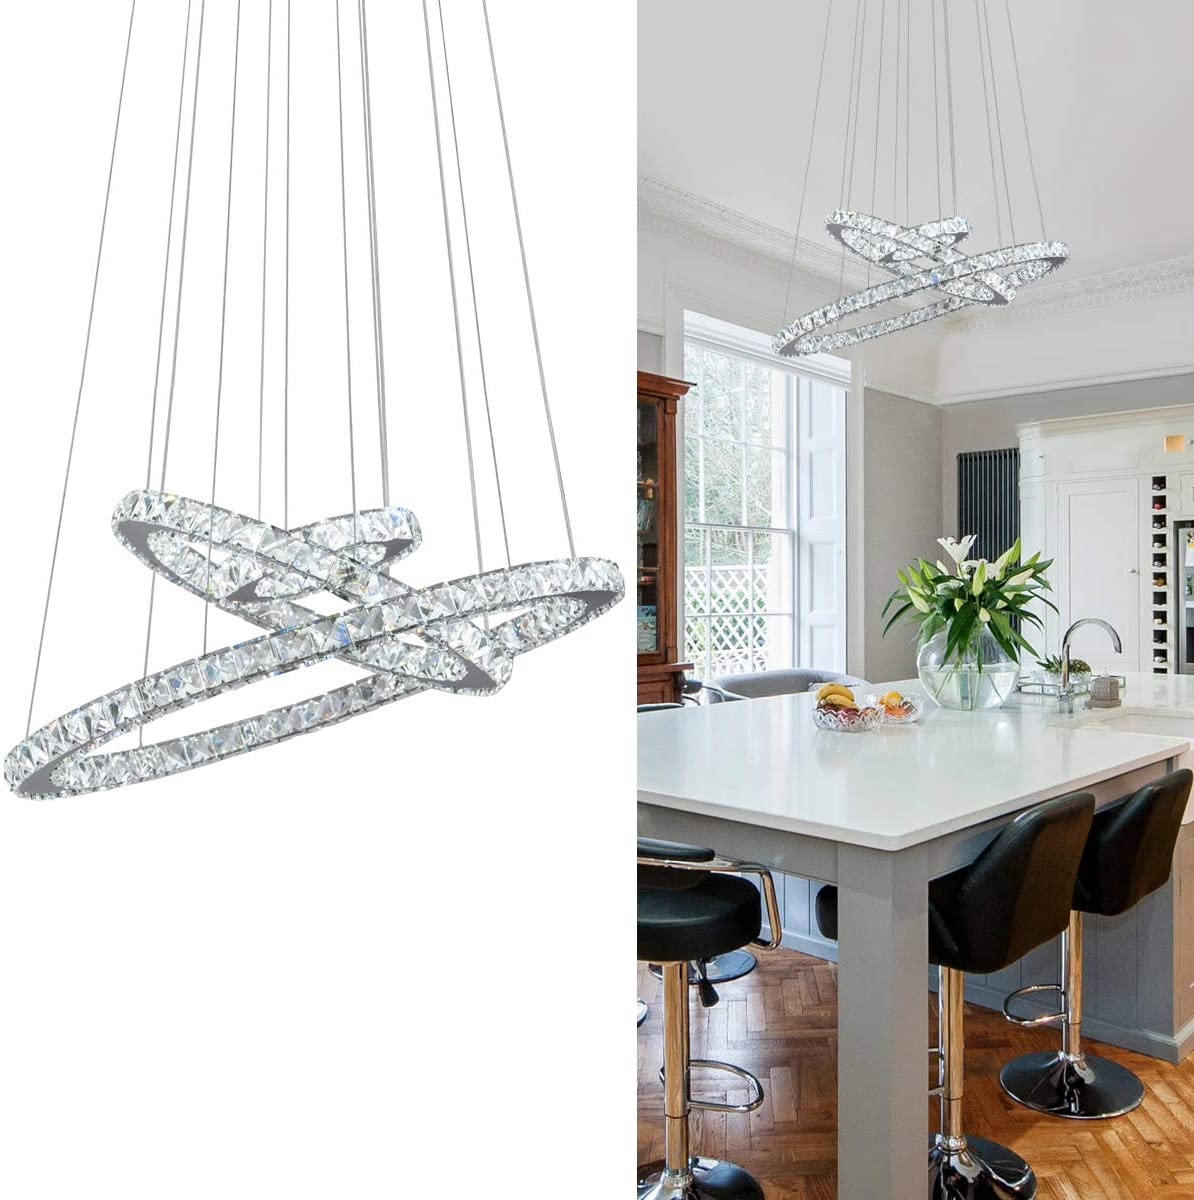 KAI Crystal Chandelier Island Pendant Light Contemporary Not Dimmable LED Lamp with Adjustable Height 3 Rings 6000K 8640LM Chrome Modern Flush Mount Ceiling Lighting for Dining Room Lobby